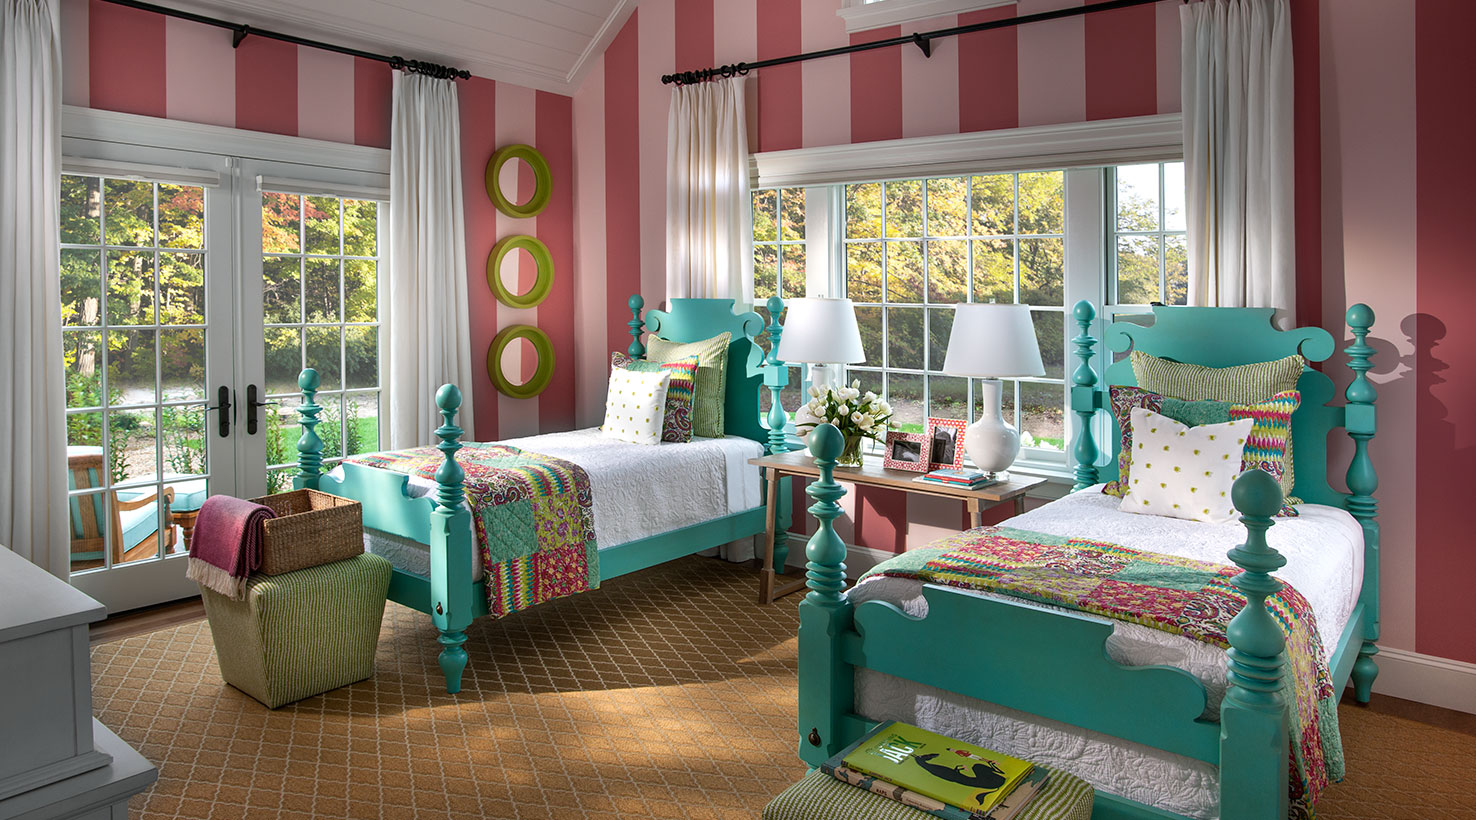 Hgtv dream home 2015 the look of hgtv sponsored by - Hgtv living room ideas on a budget ...